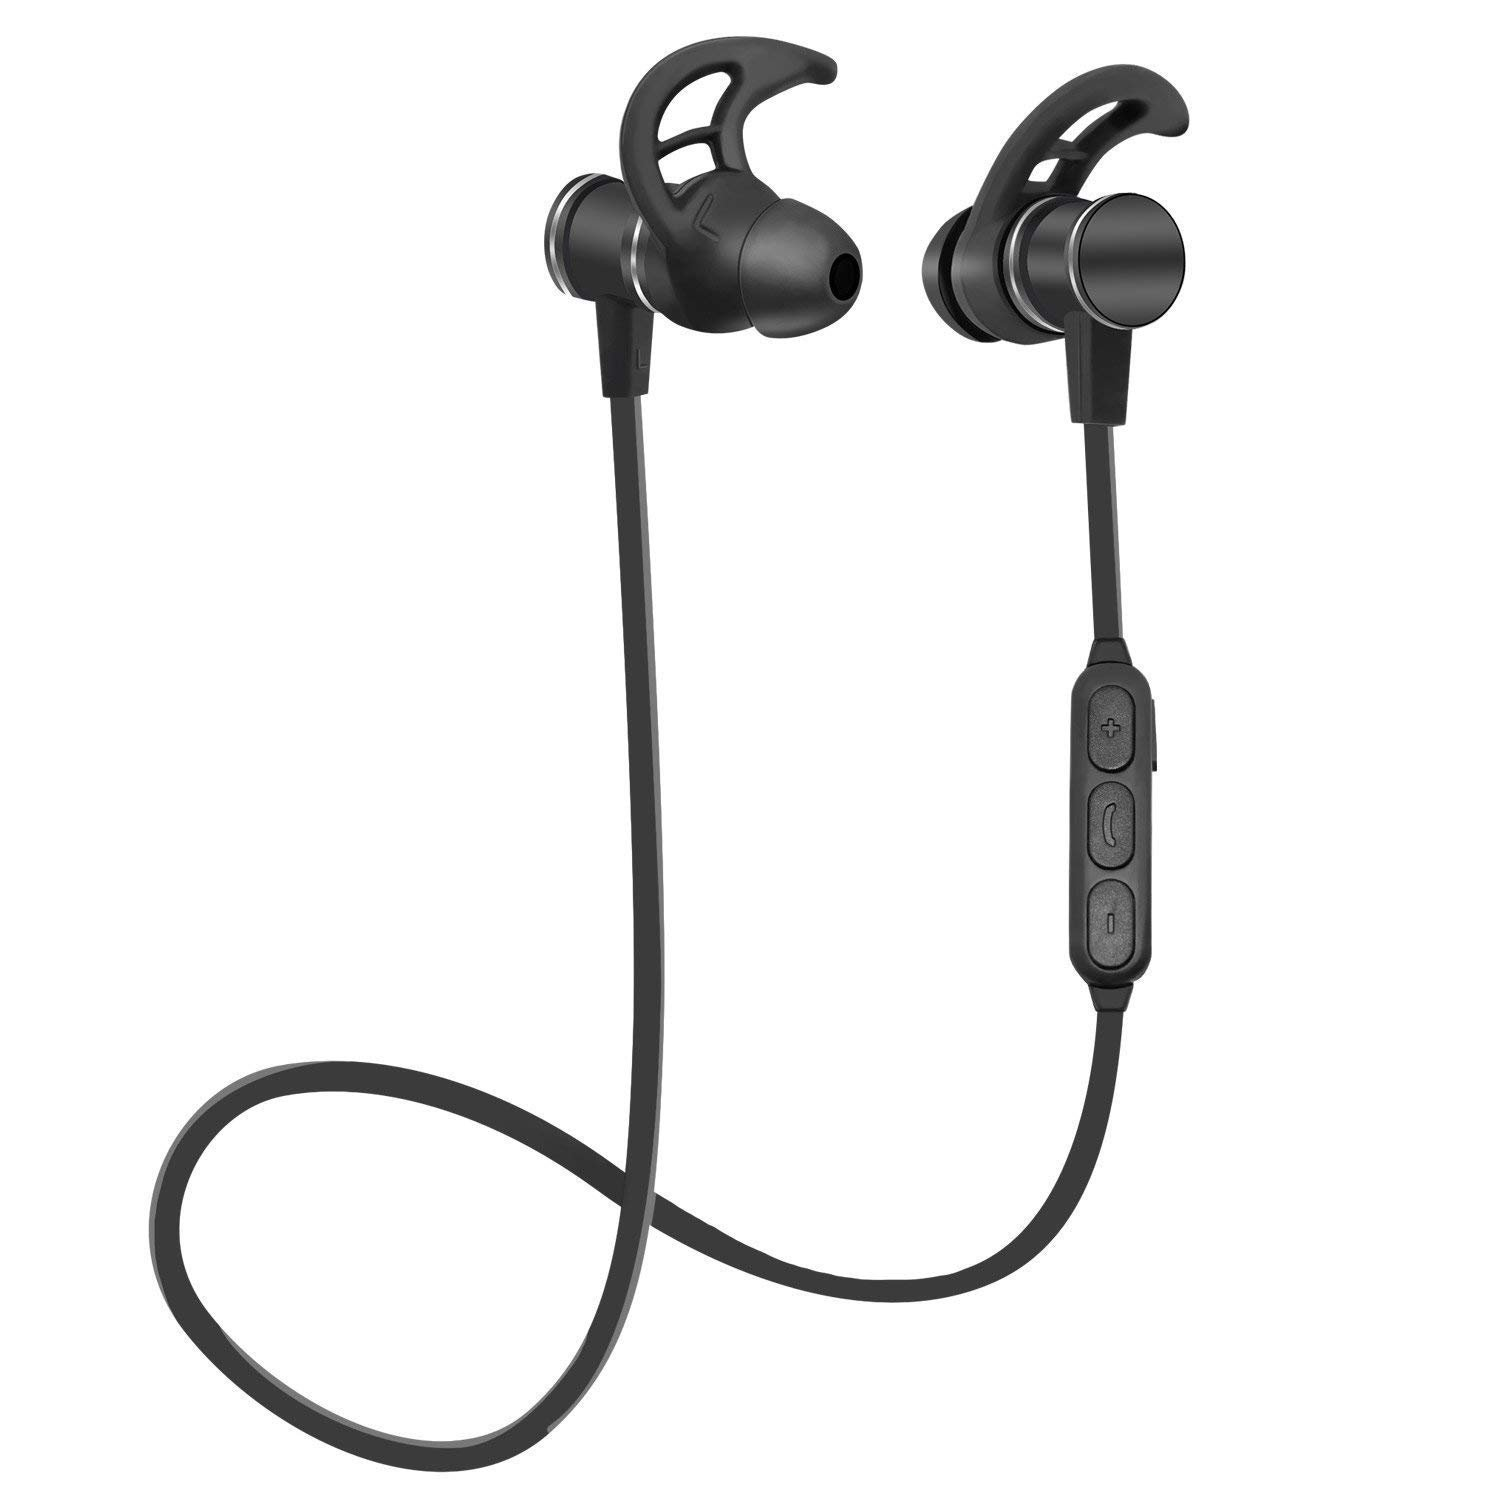 Bluetooth Headphones Dearam Wireless Earbuds Sport Earphones 8 Hours 4.1 Magnetic Lightweight & Fast Pairing (CVC 6.0 Noise Cancelling Mic, Snug Silicon Earbuds, Magnetic Design)